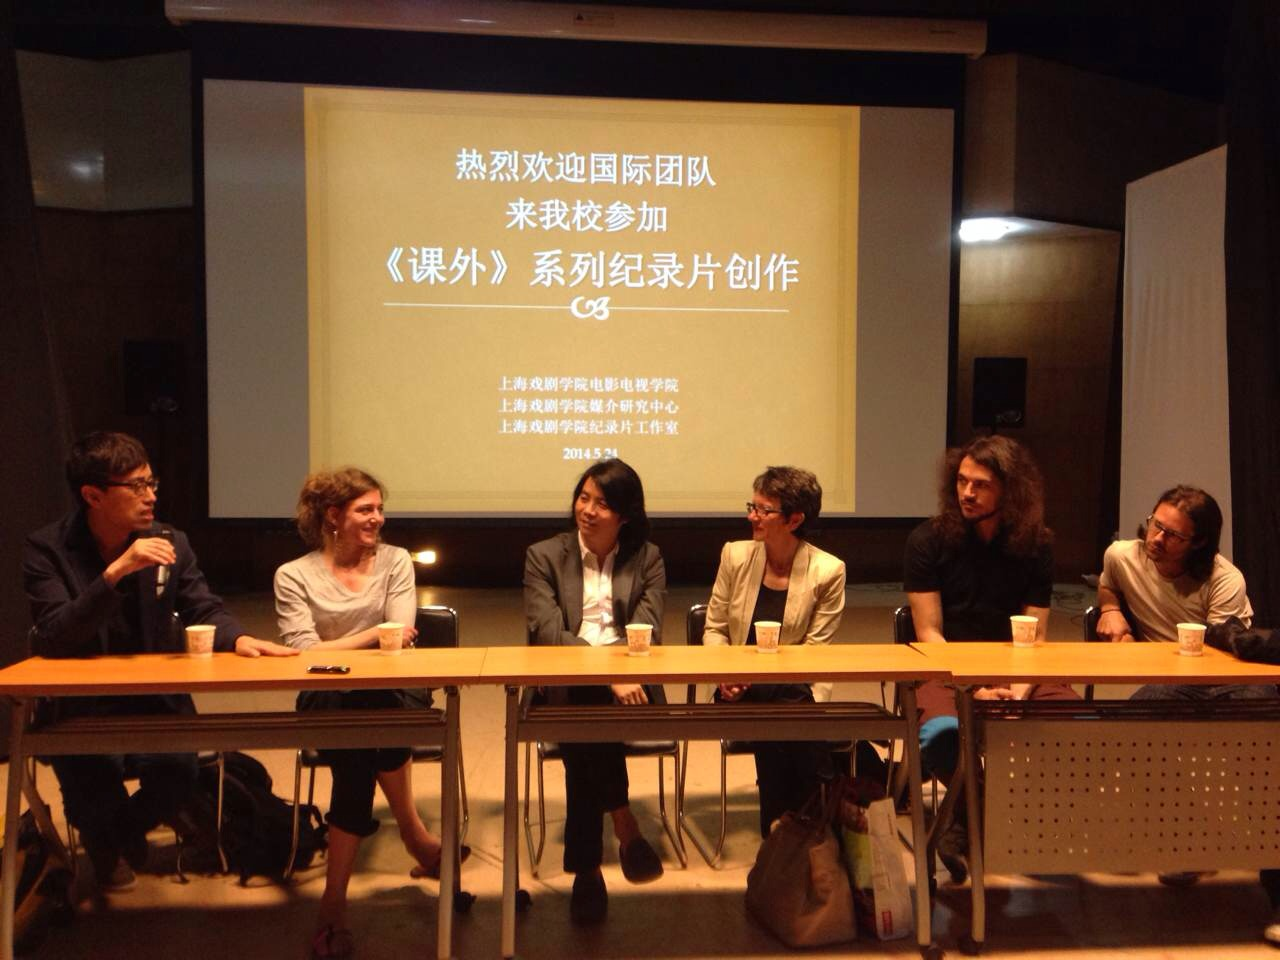 From left to right: Yun-Long Song, Vera Kovac, Hu Min, Lucie Bader, Urban Schwegler, and me.